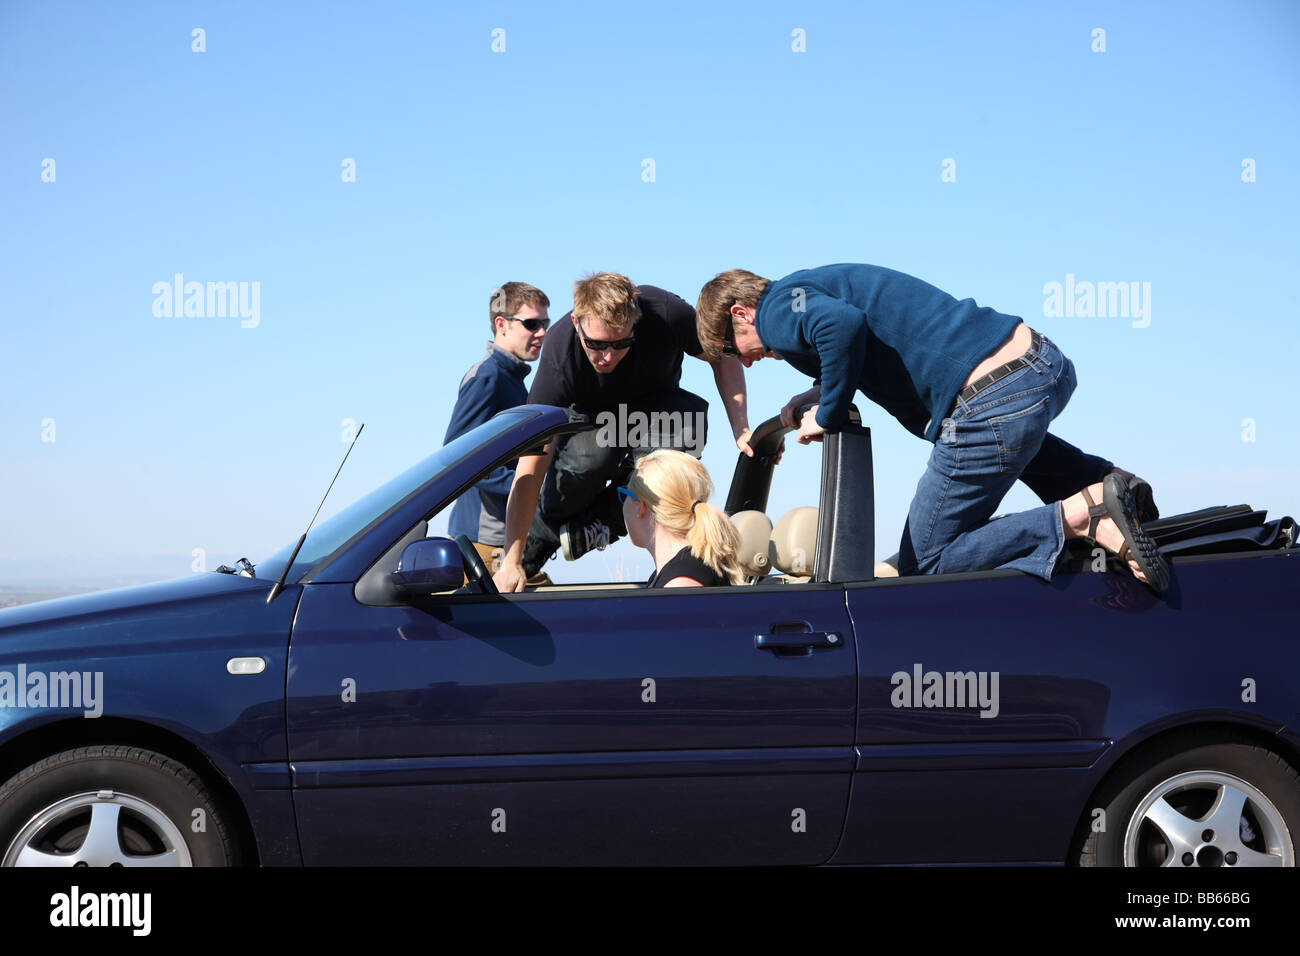 Group of young people getting into convertible car - Stock Image